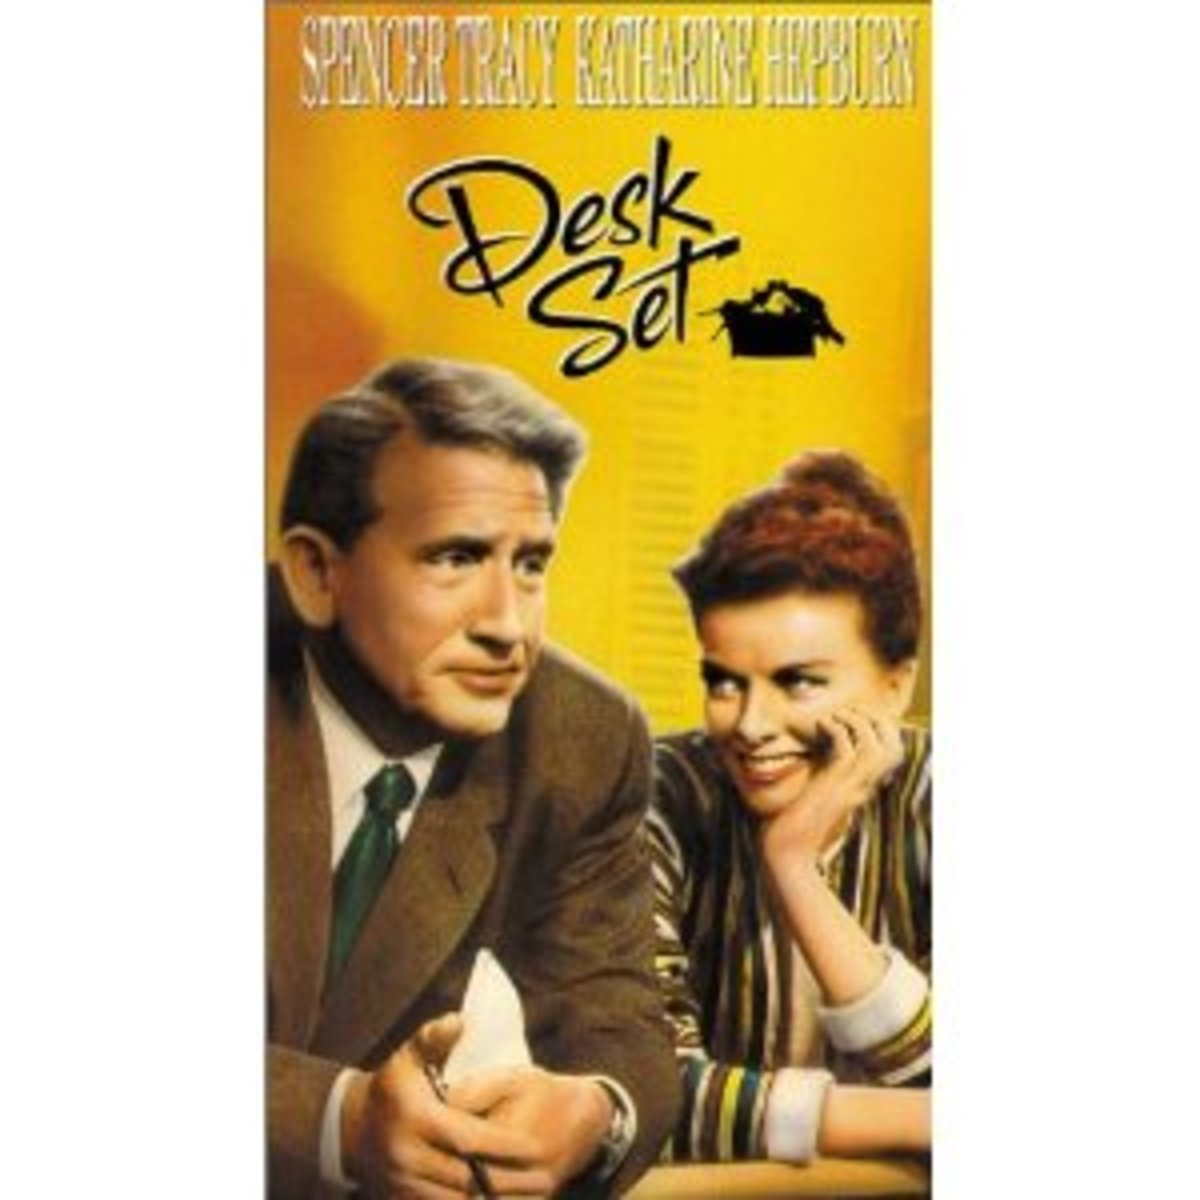 """Desk Set"" was one of Hepburn and Tracy's classic films together."